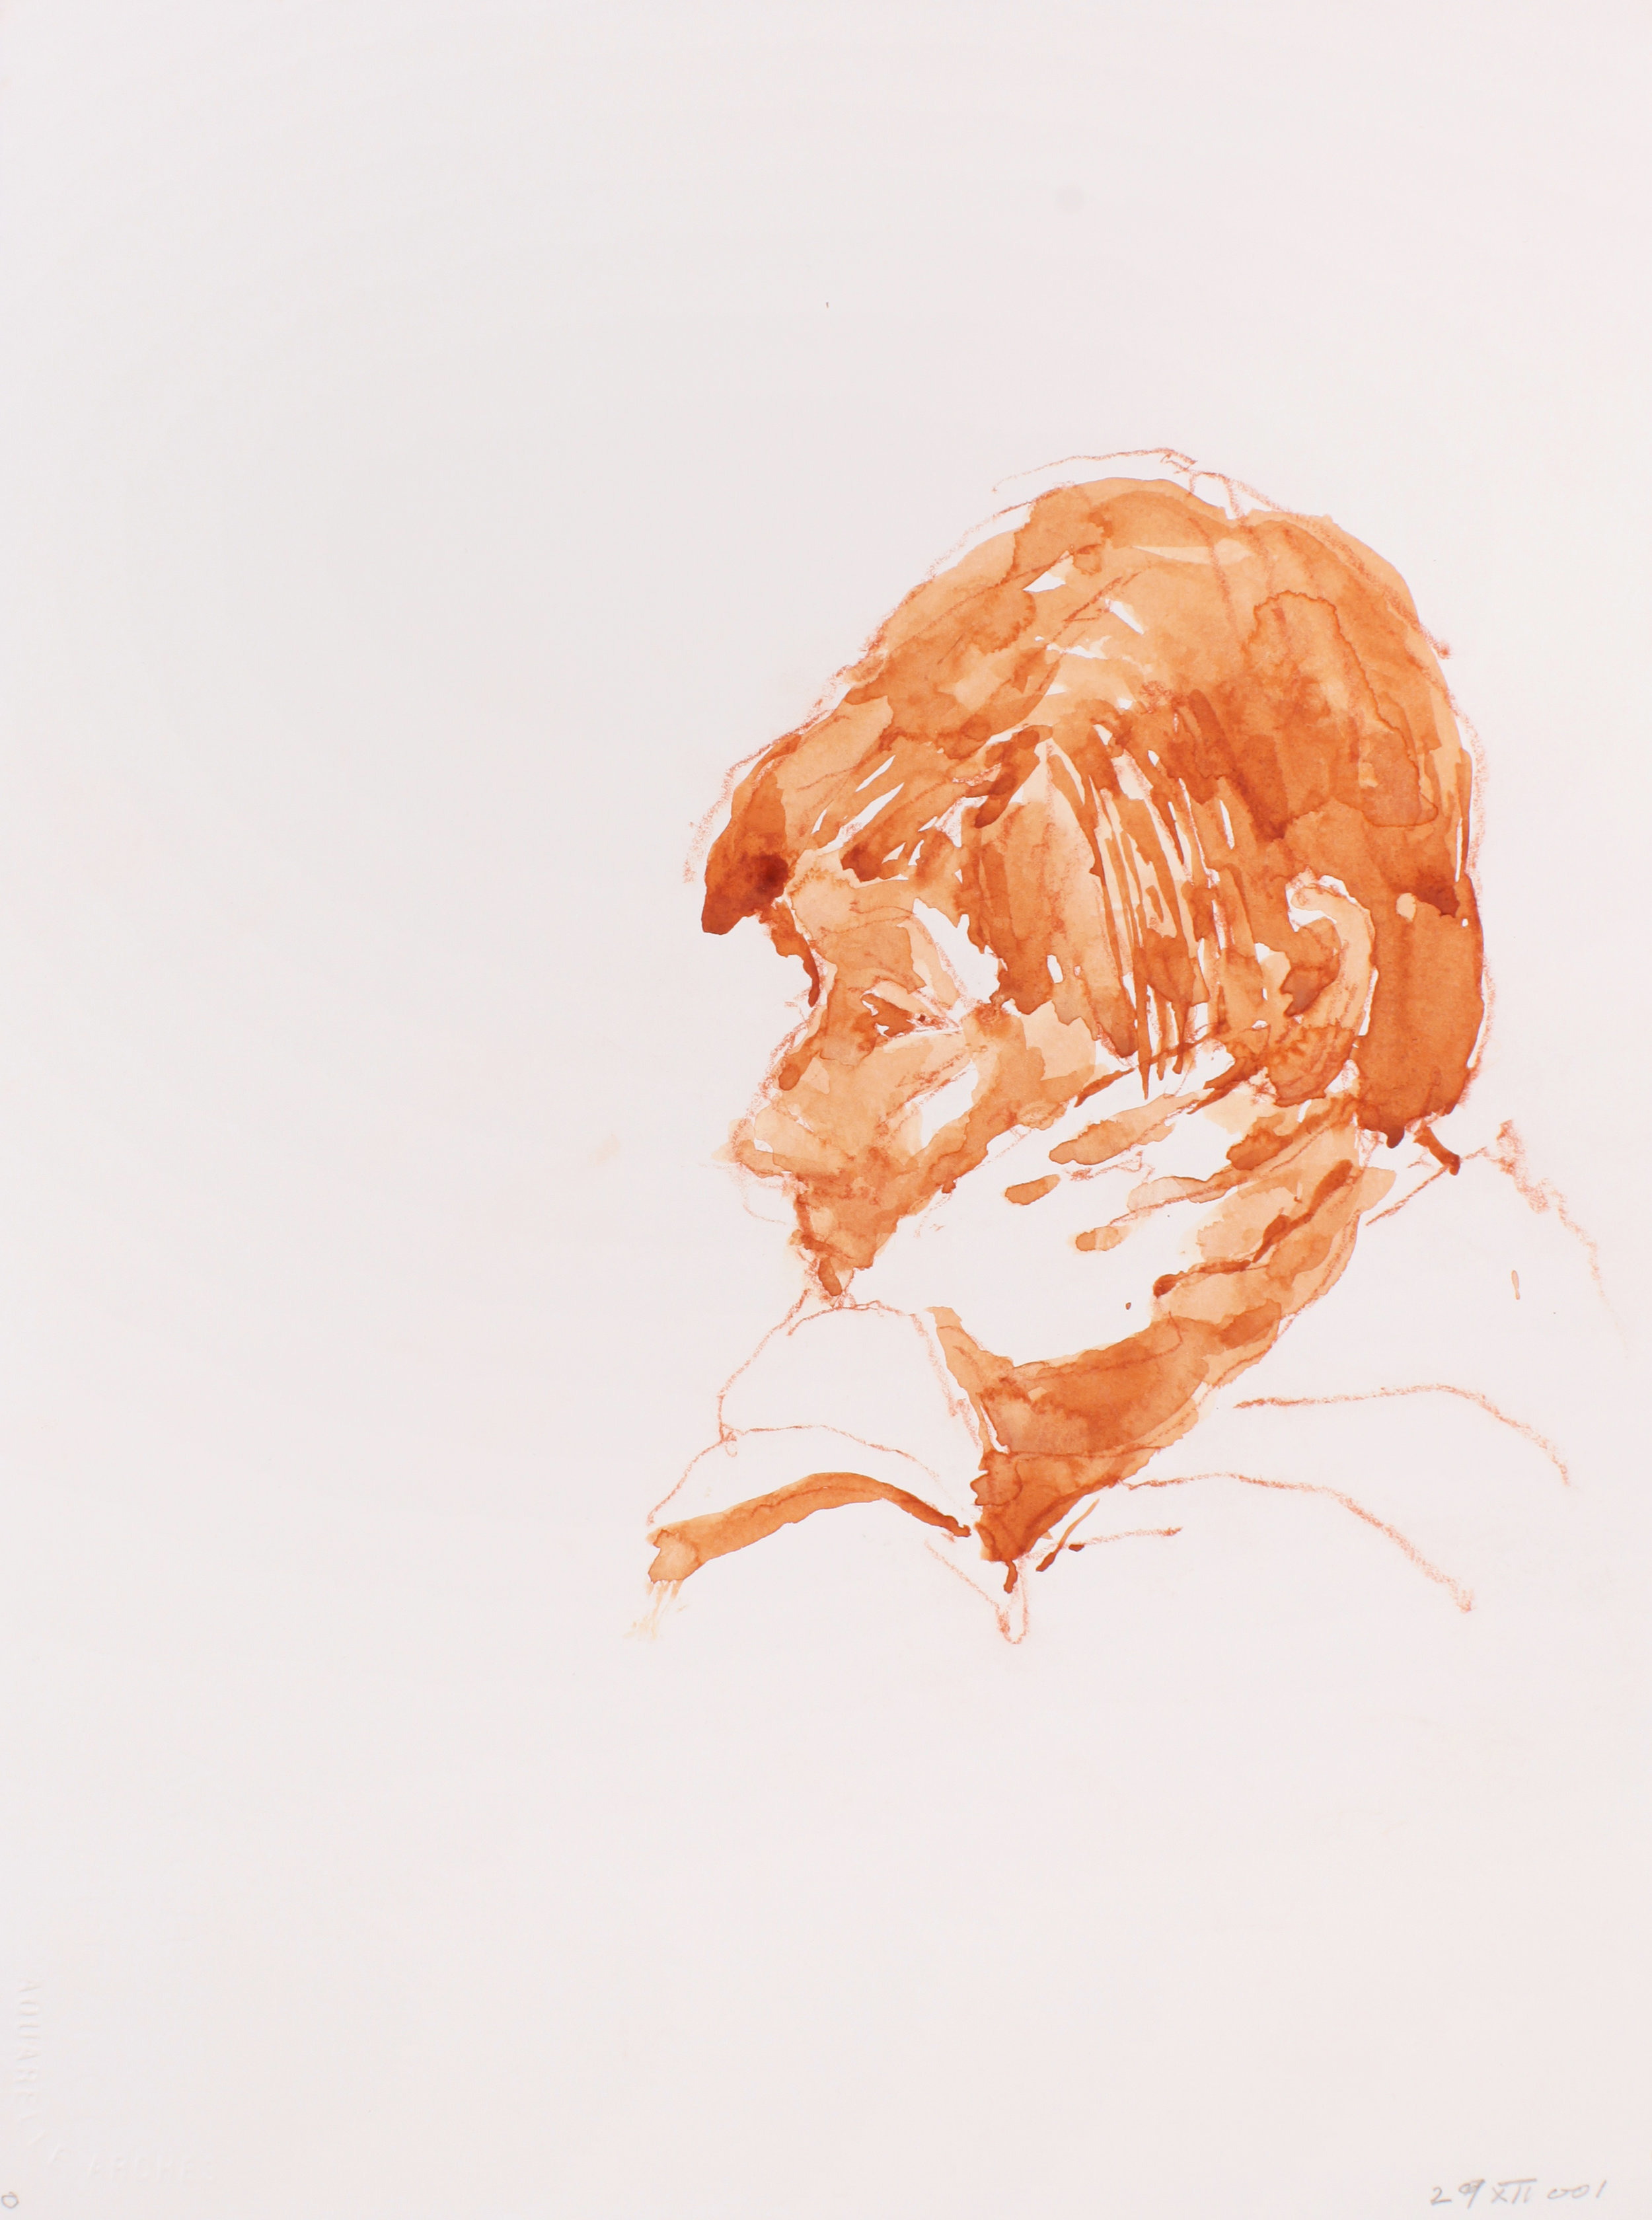 2001_Sandra_Head_in_Hand_watercolour_and_red_conté_on_paper_15x11in_WPF146.jpg